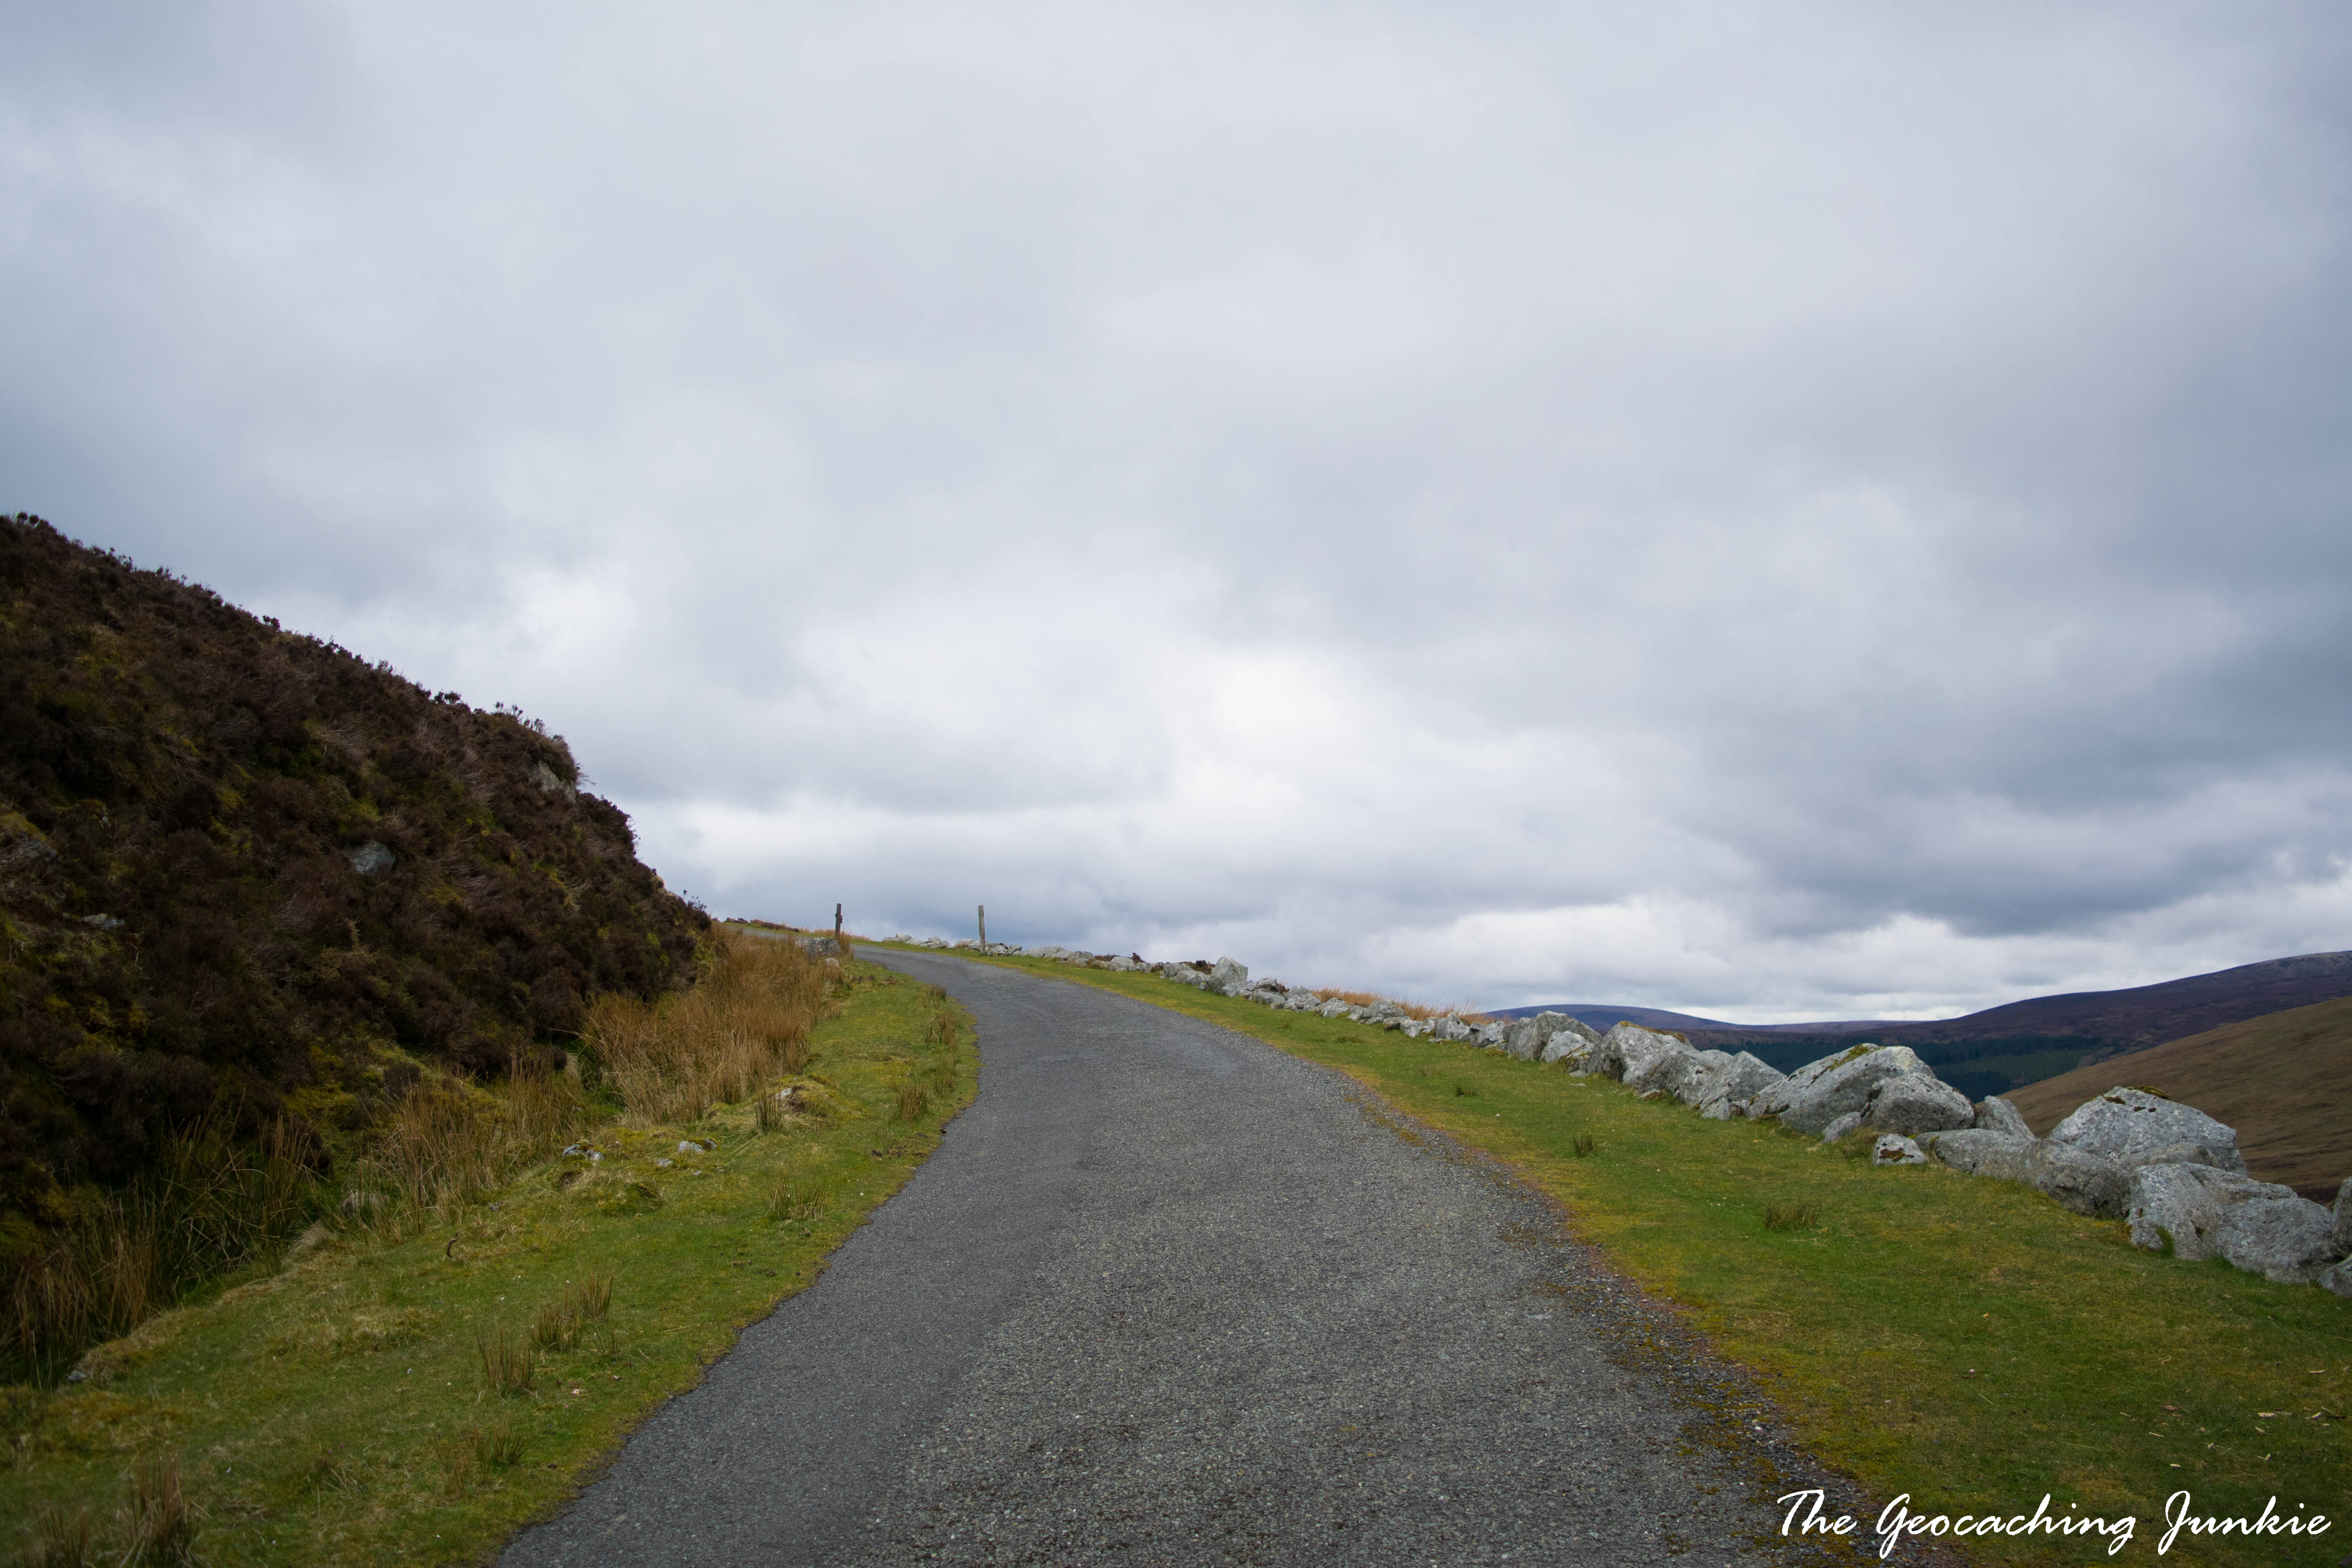 The Geocaching Junkie: April Hike - Turlough Hill, County Wicklow